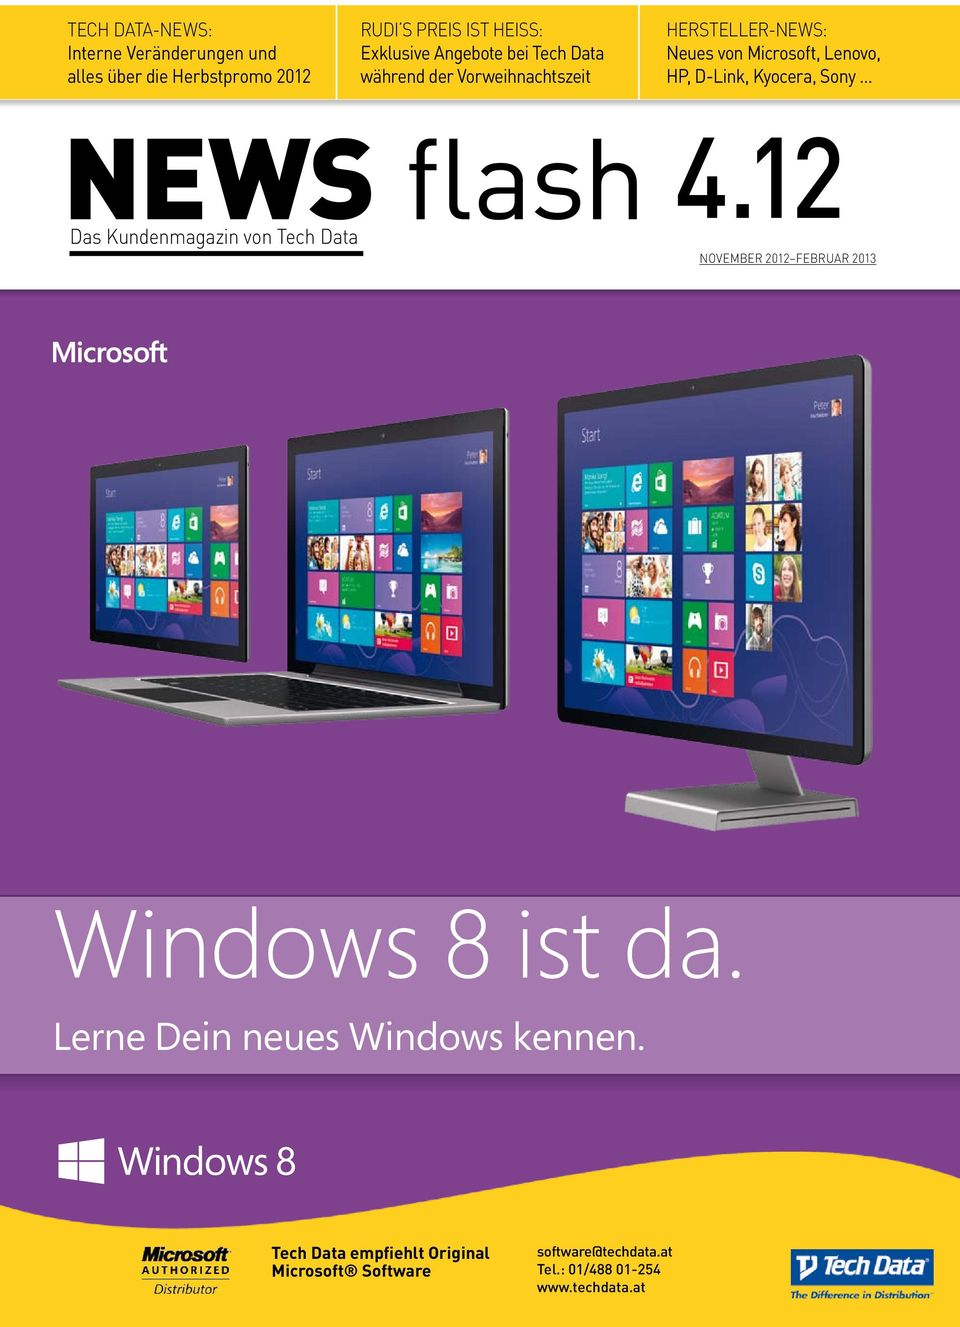 Kundenmagazin von Tech Data 4.12 November 2012 Februar 2013 Windows 8 ist da. Windows 8 ist da. Lerne Dein neues kennen.